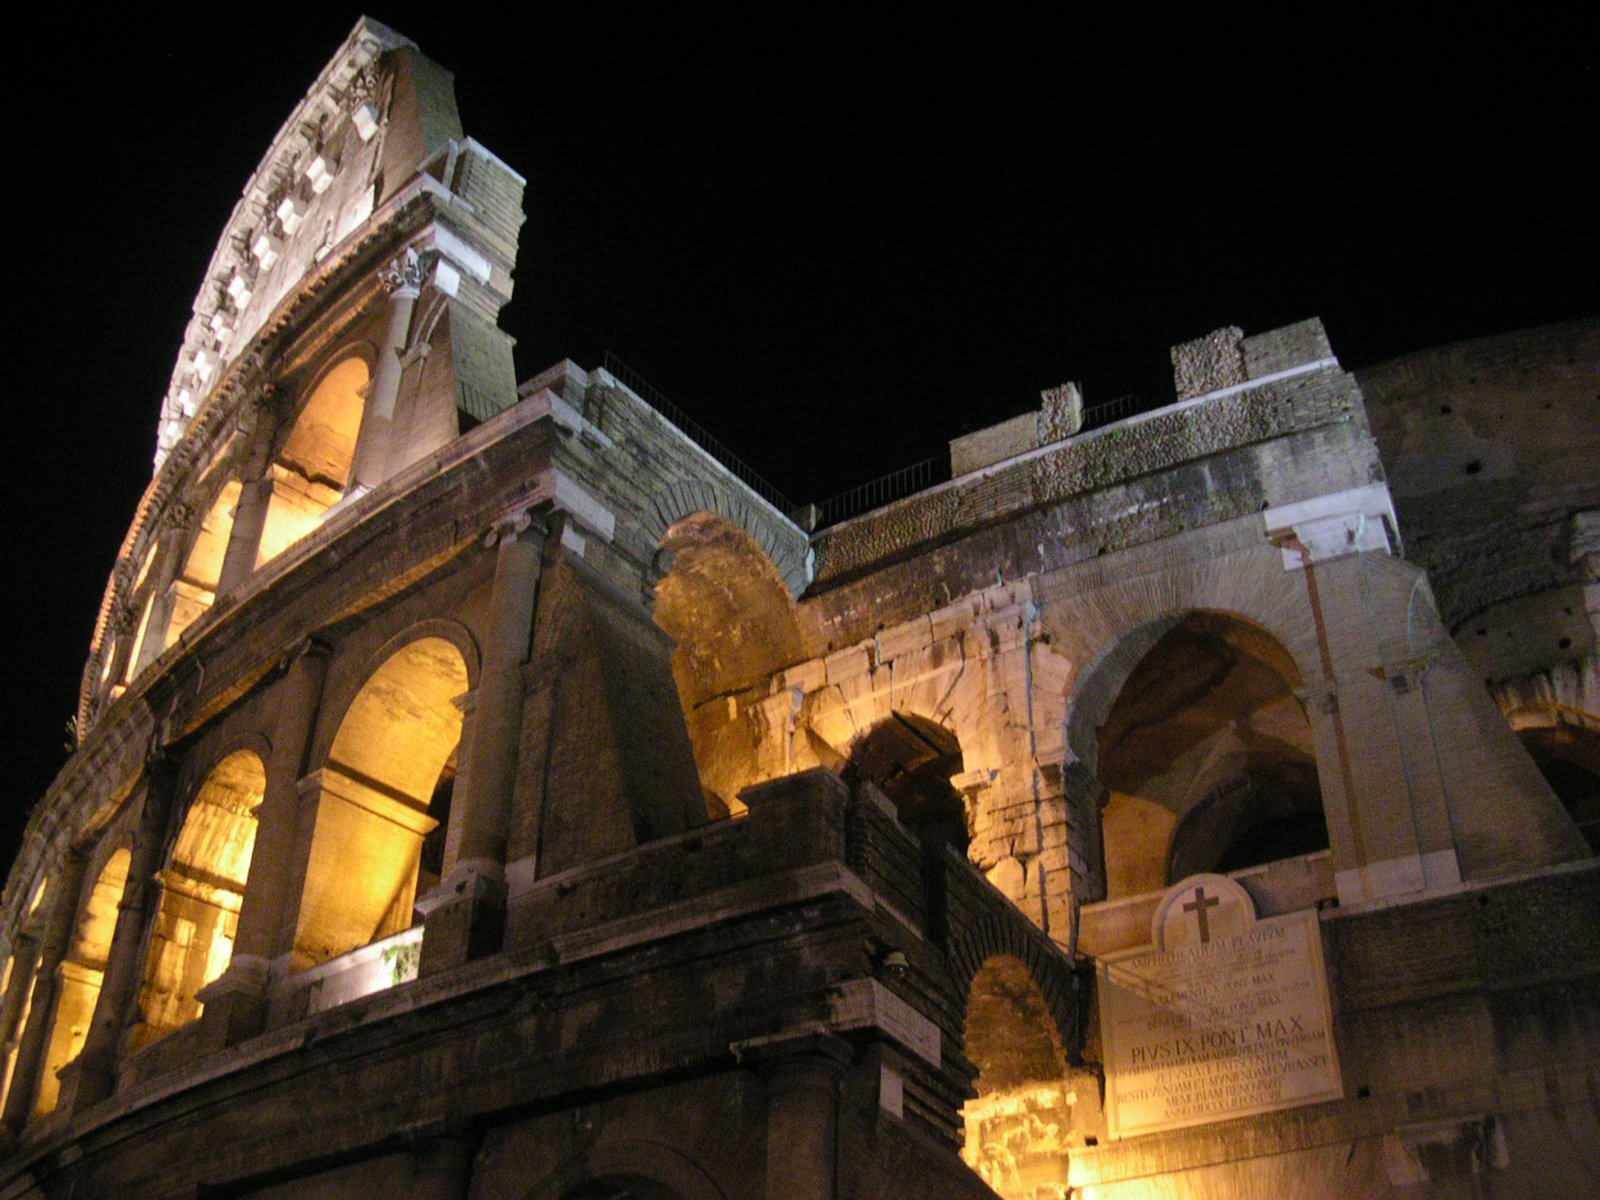 Amazing Wallpaper Night Colosseum - Closeup-Of-The-Colosseum-At-Night  You Should Have.jpg